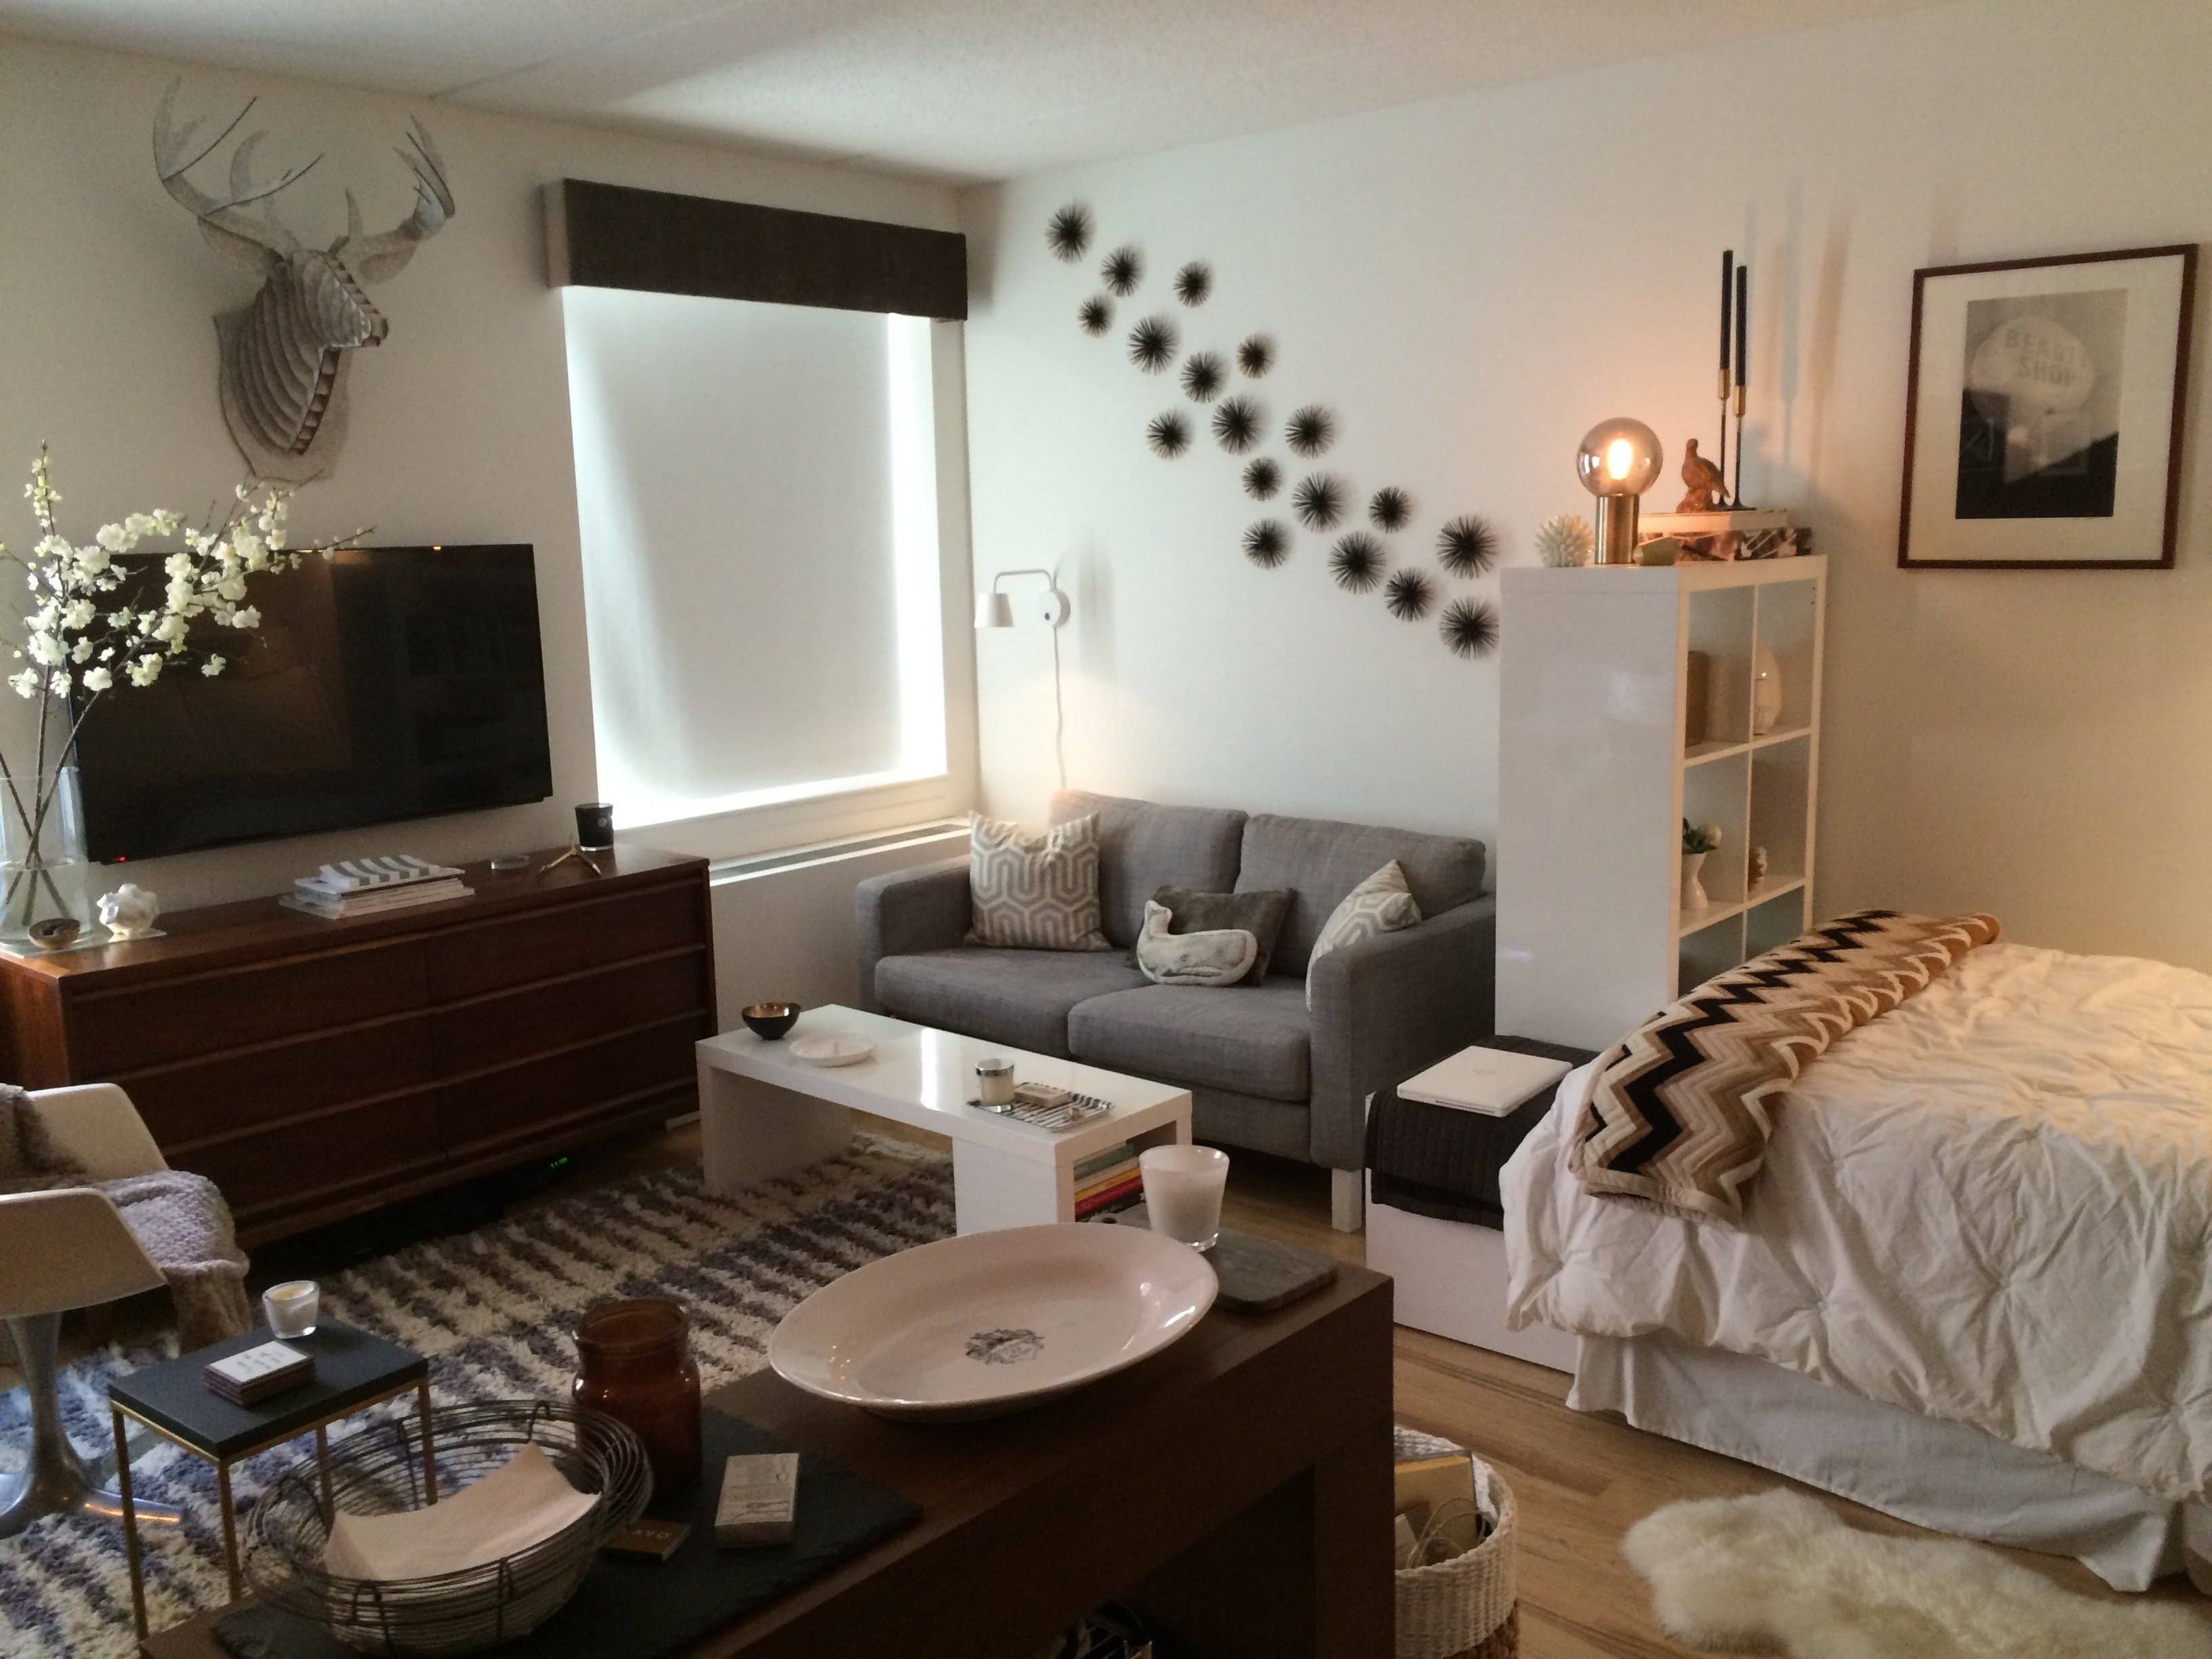 5 Studio Apartment Layouts That Just Plain Work